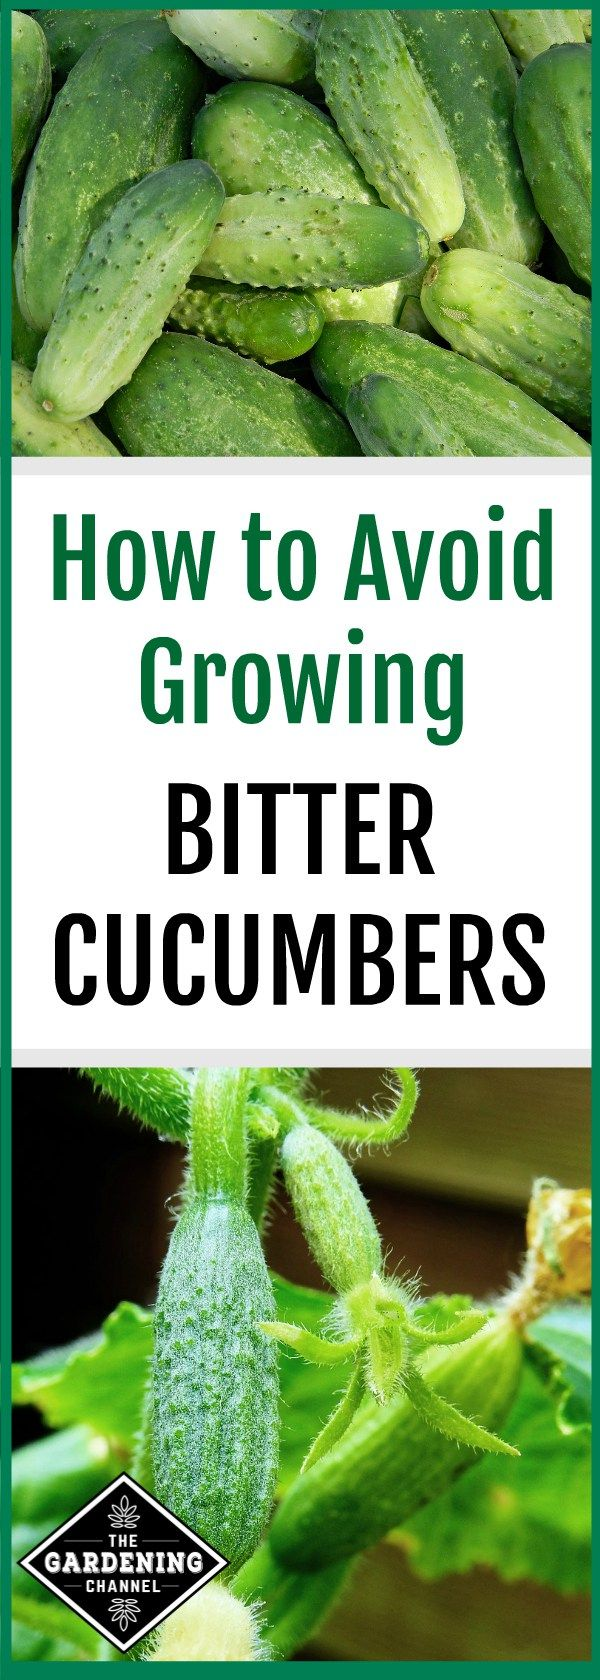 How to understand why cucumbers crochet grow